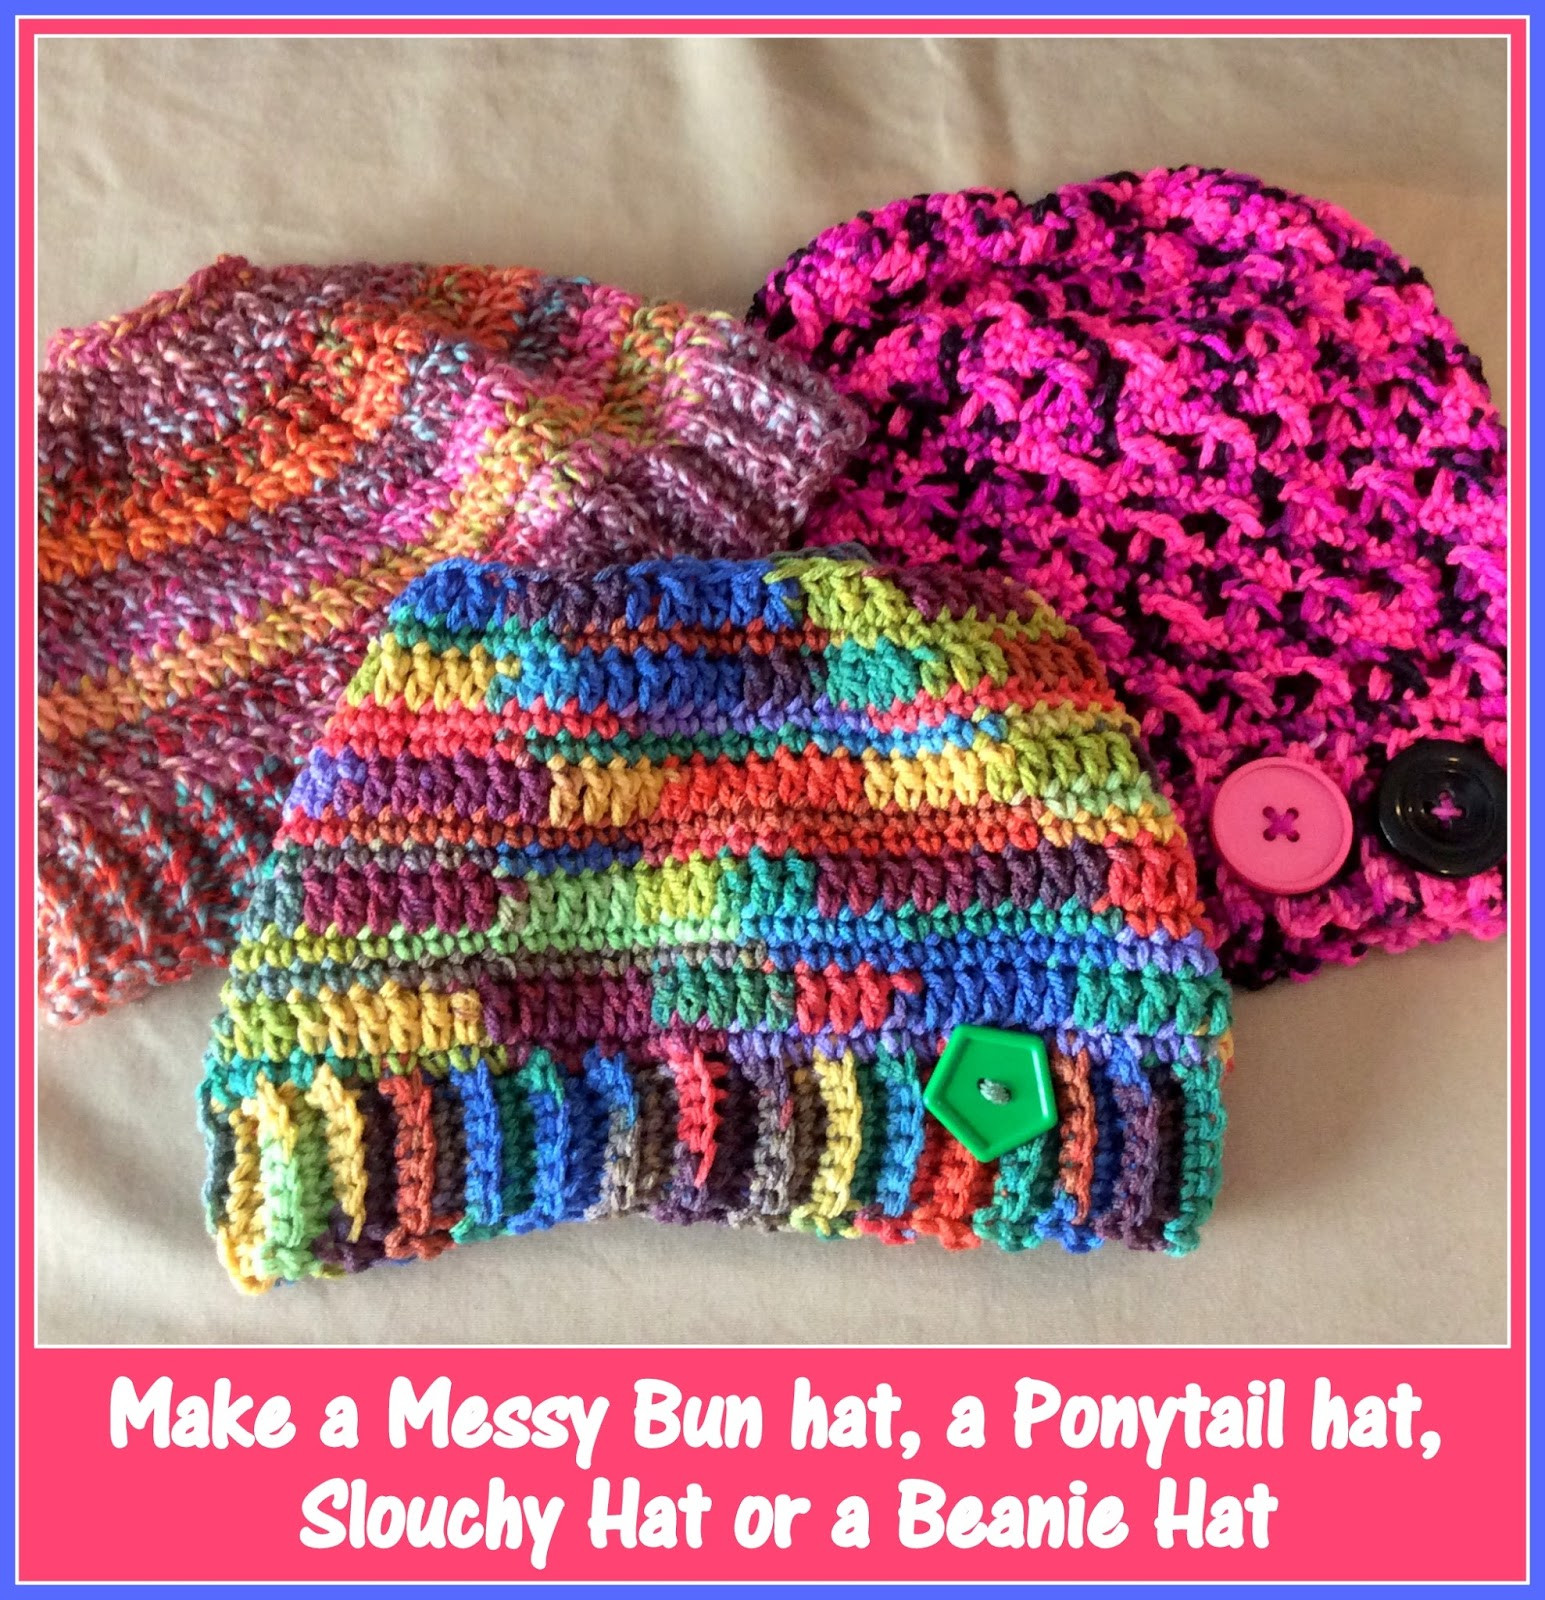 Messy Bun Hat Crochet Pattern Elegant 23 Free Messy Bun Hat Crochet Patterns Make A Ponytail Of Amazing 47 Images Messy Bun Hat Crochet Pattern